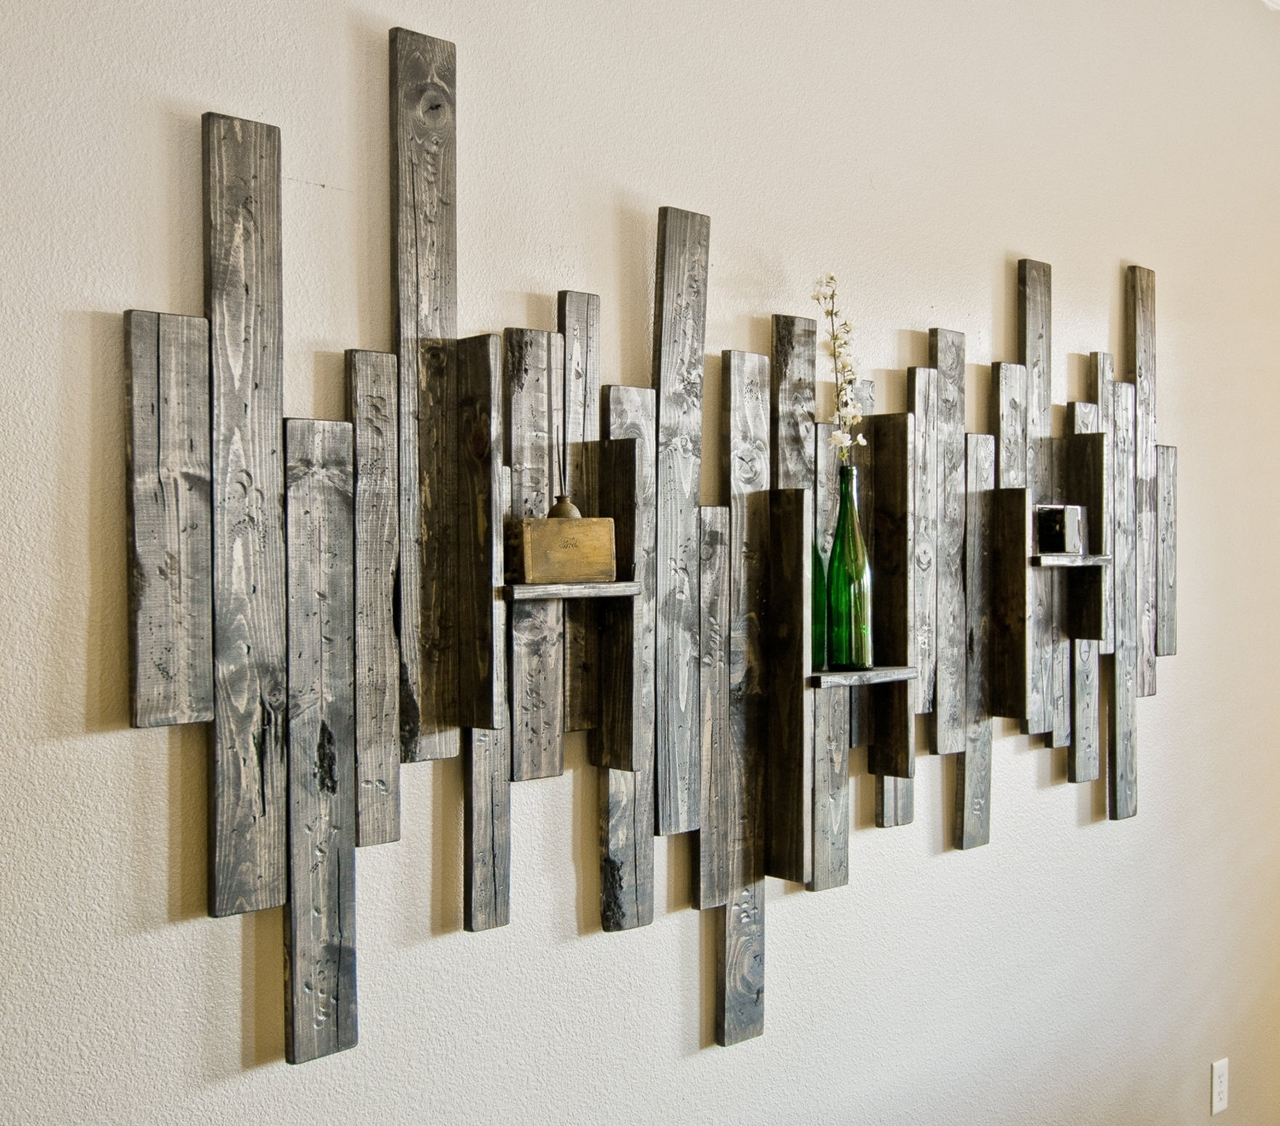 27 Best Rustic Wall Decor Ideas And Designs For 2018 Intended For Most Current Rustic Wall Accents (Gallery 1 of 15)